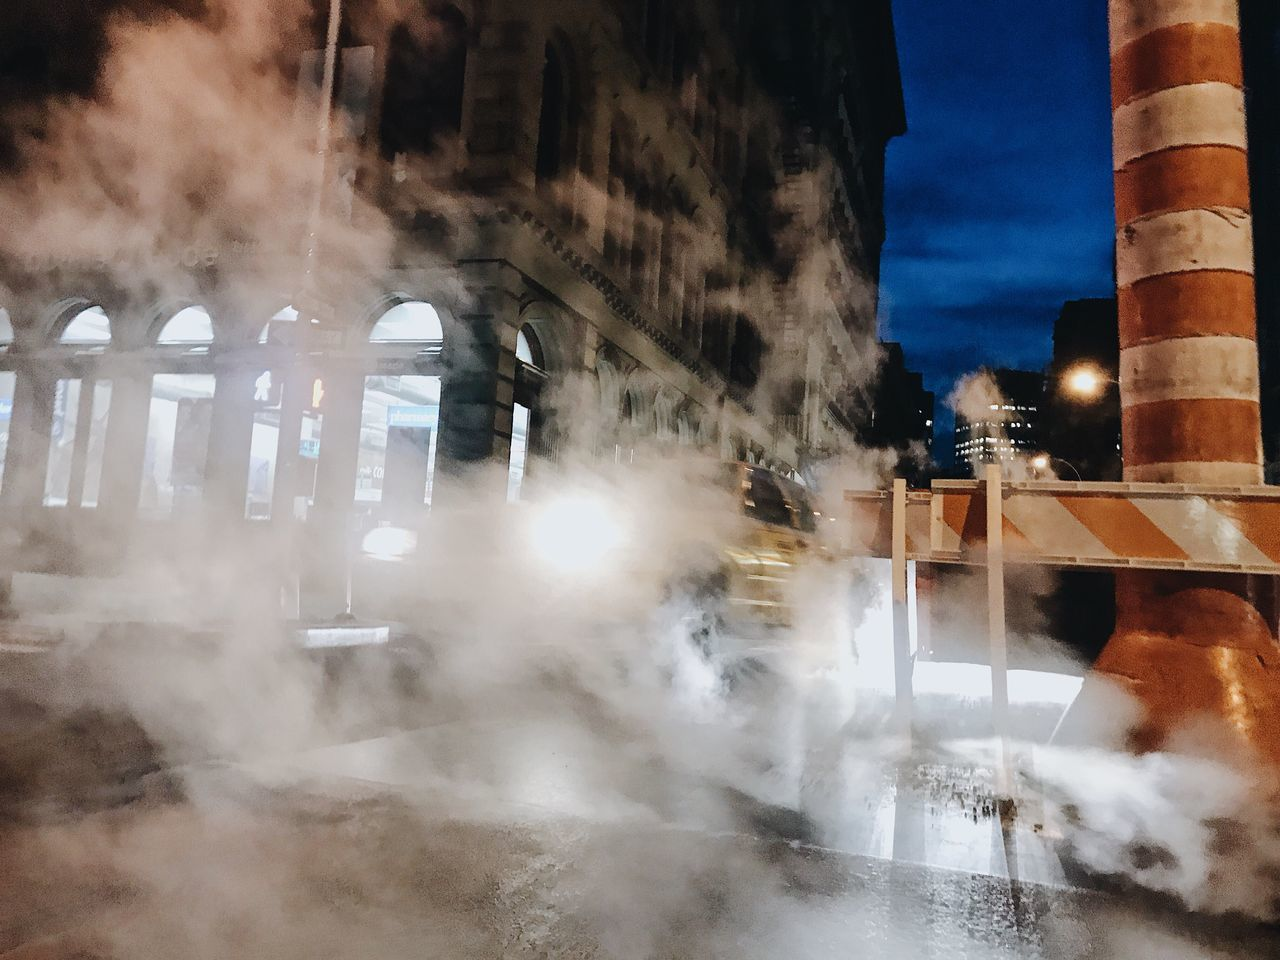 architecture, built structure, building exterior, smoke - physical structure, night, outdoors, city, illuminated, steam, no people, sky